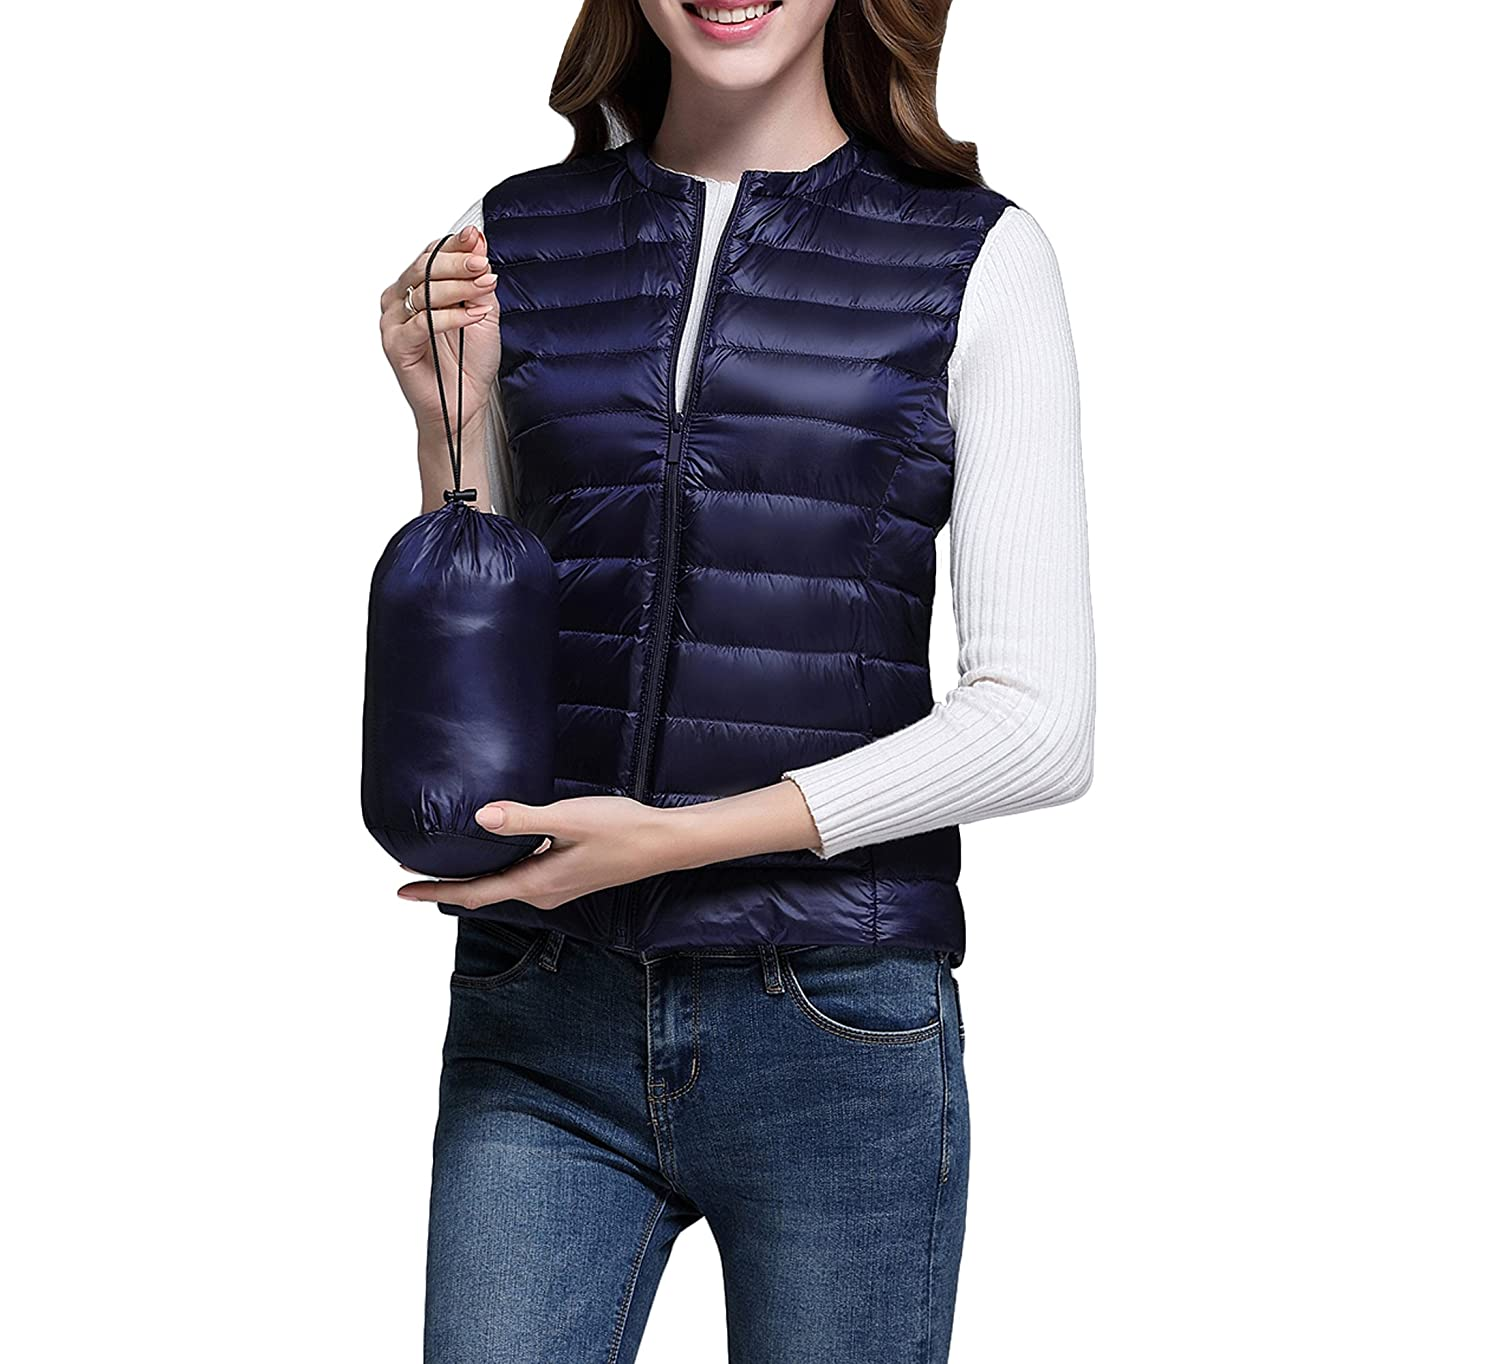 VMANNER Women's Down Vest Packable LightweightOutdoor Puffer Vest Down Puffer Vest